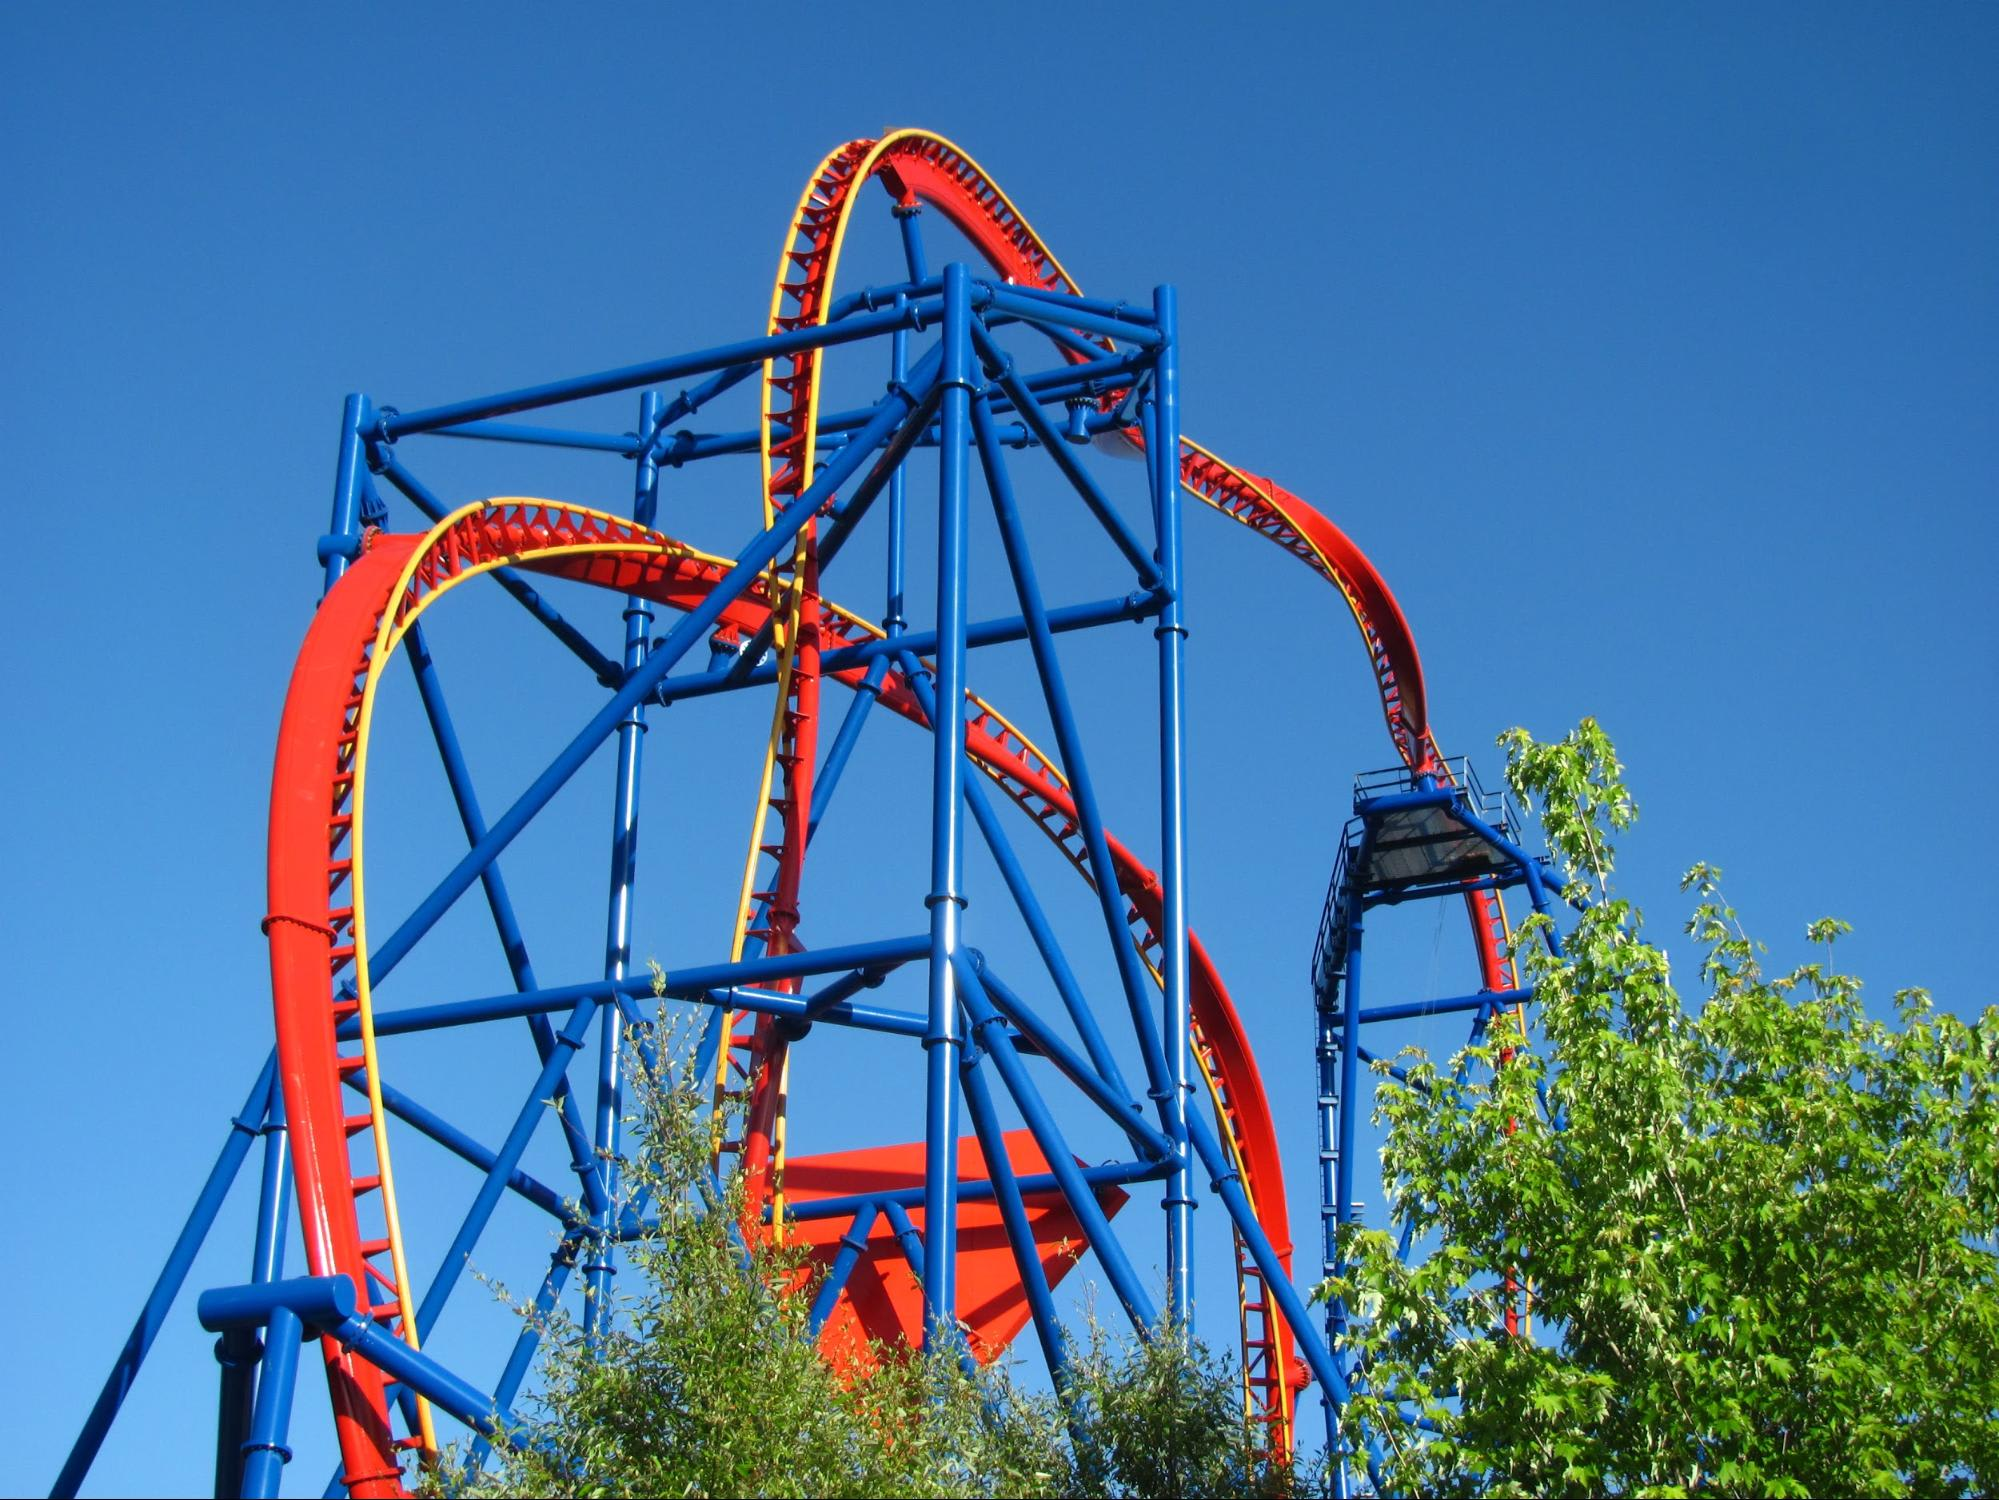 Rides and Attractions You Can't Miss at Six Flags Discovery Kingdom